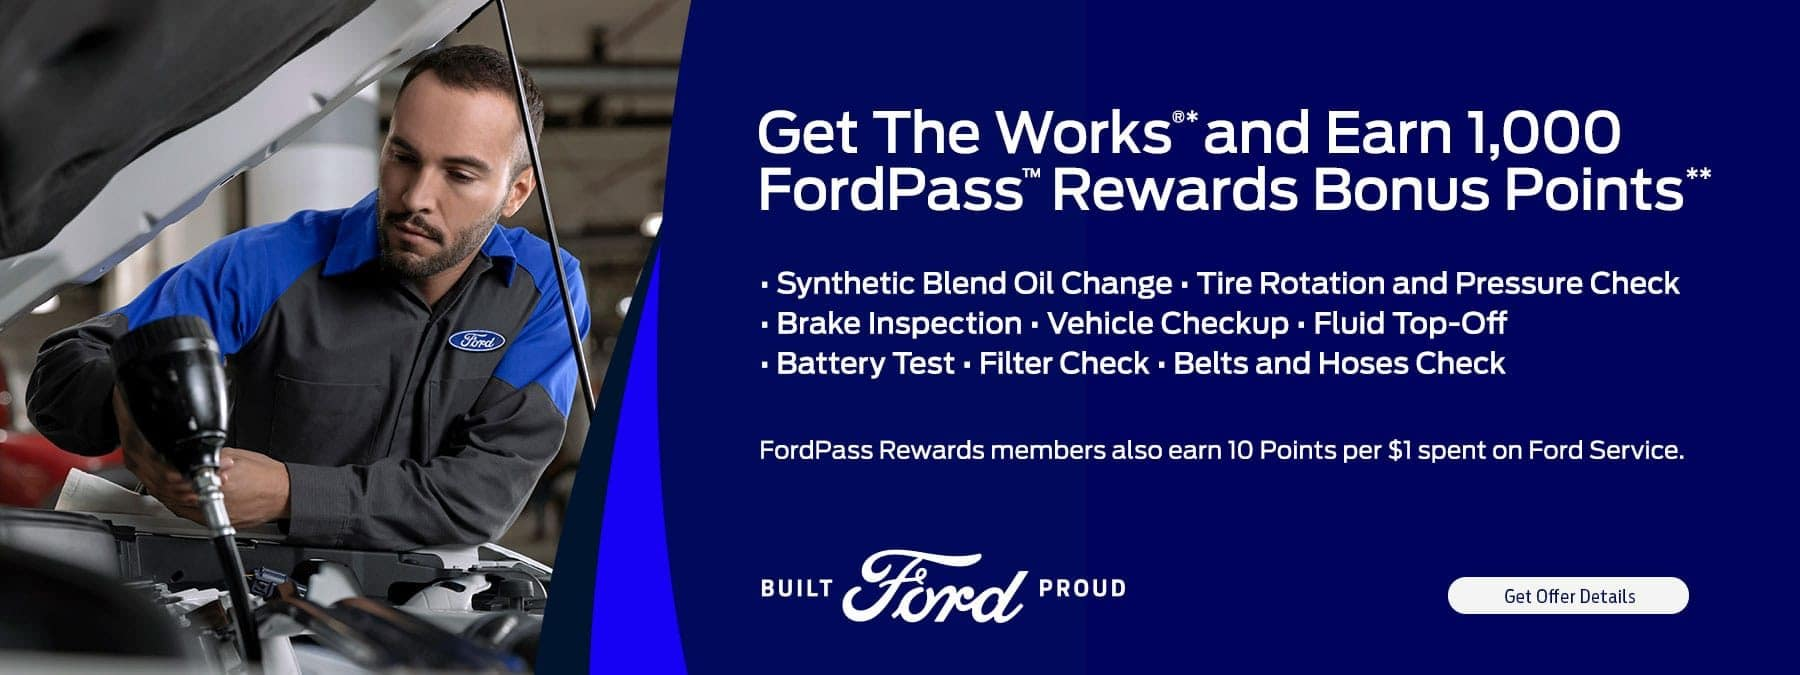 Get The Works and Earn FordPass Rewards points